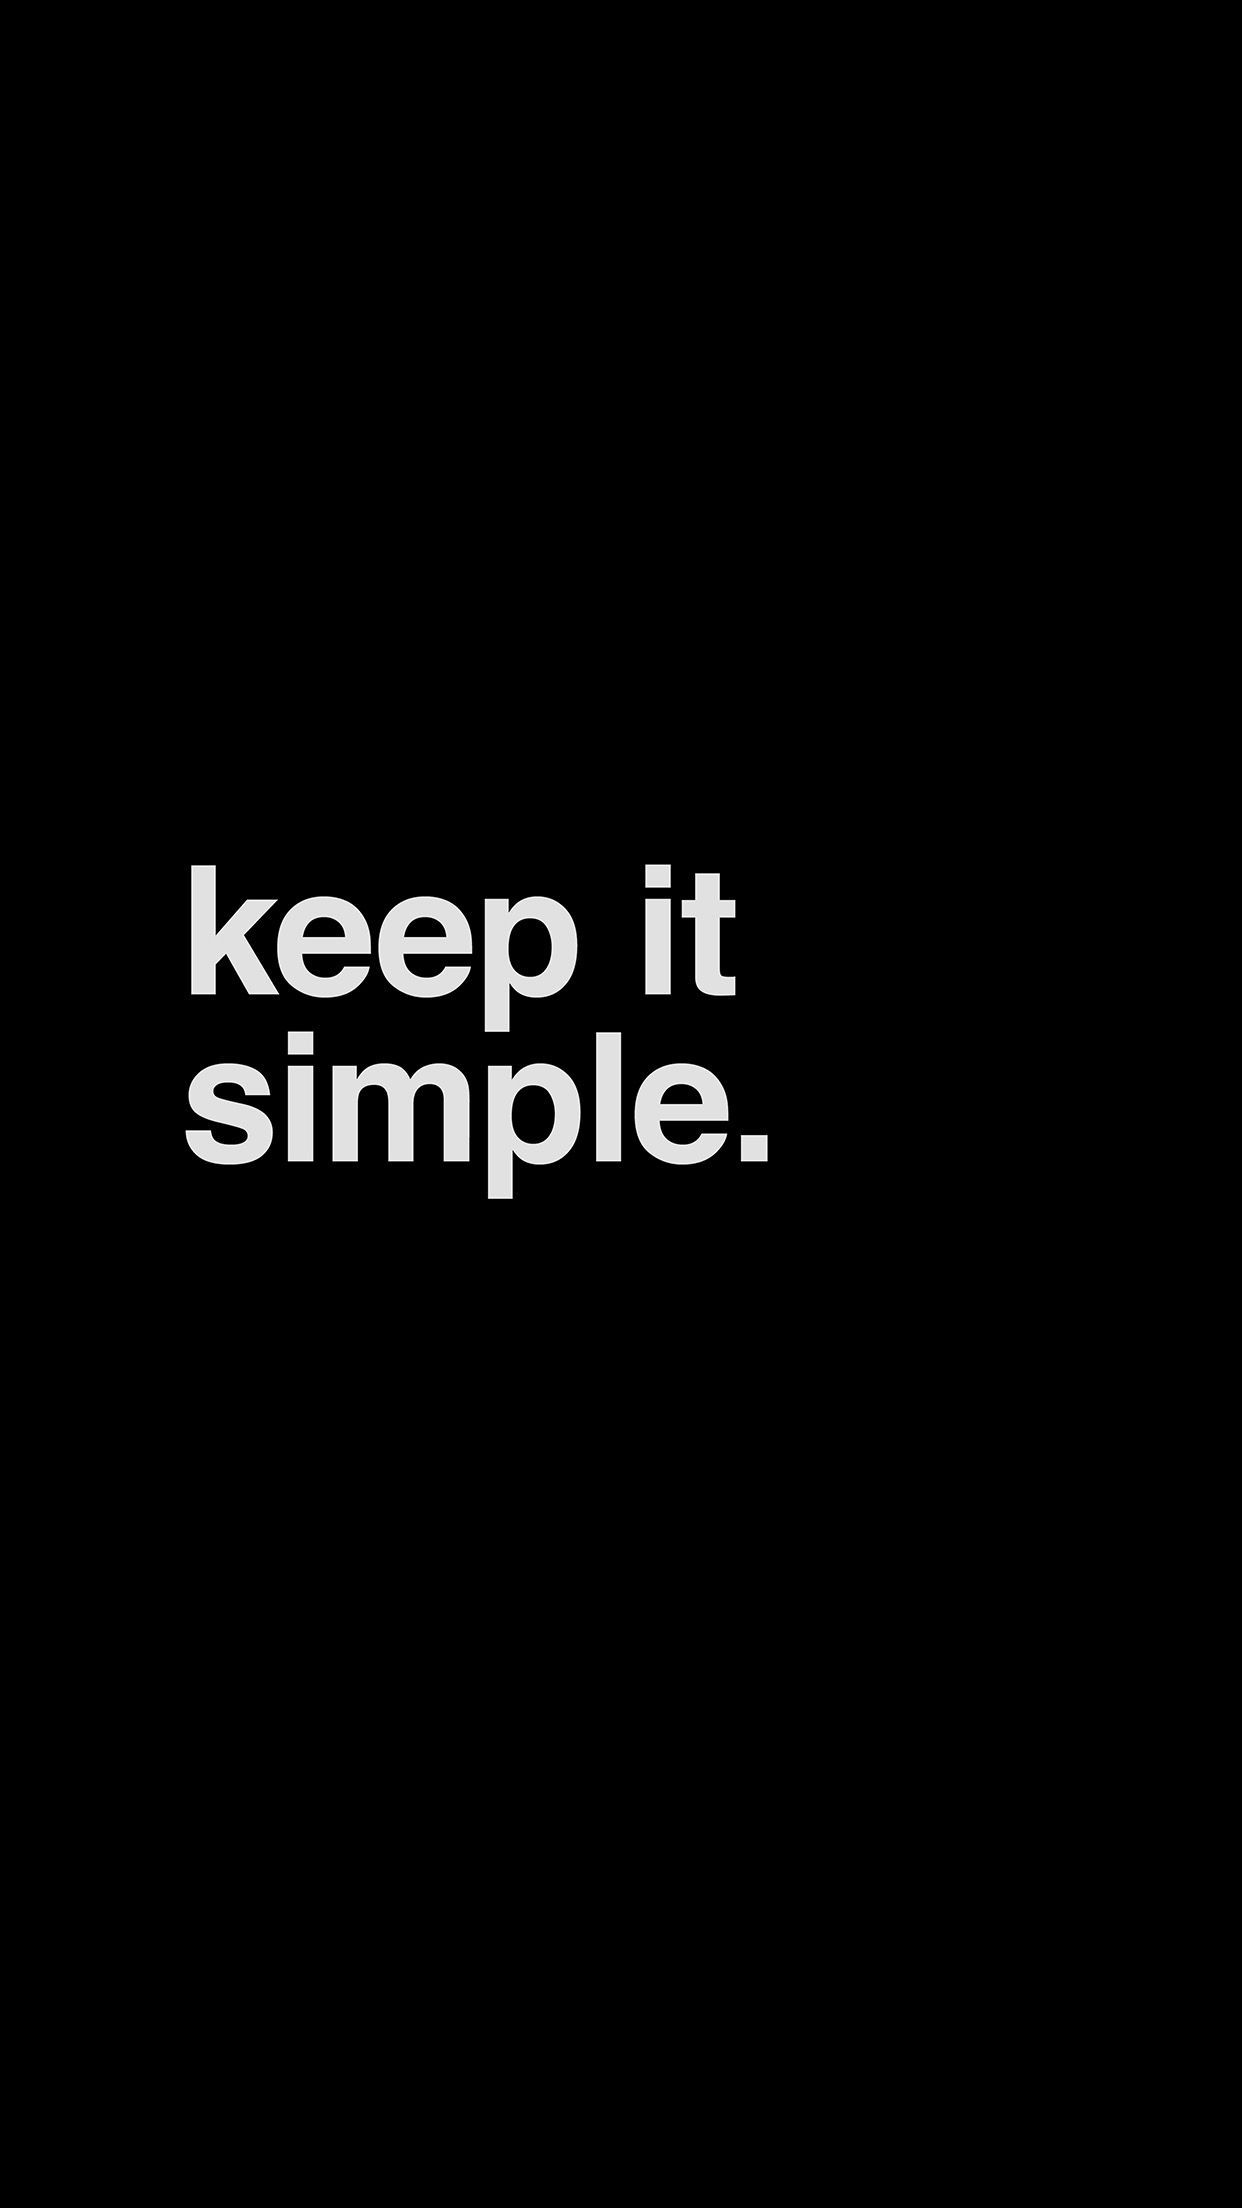 Nice Minimal Keep It Simple Stupid Black Dark Quote Iphone6 Plus Plain Black Wallpaper Simple Wallpapers Dark Quotes